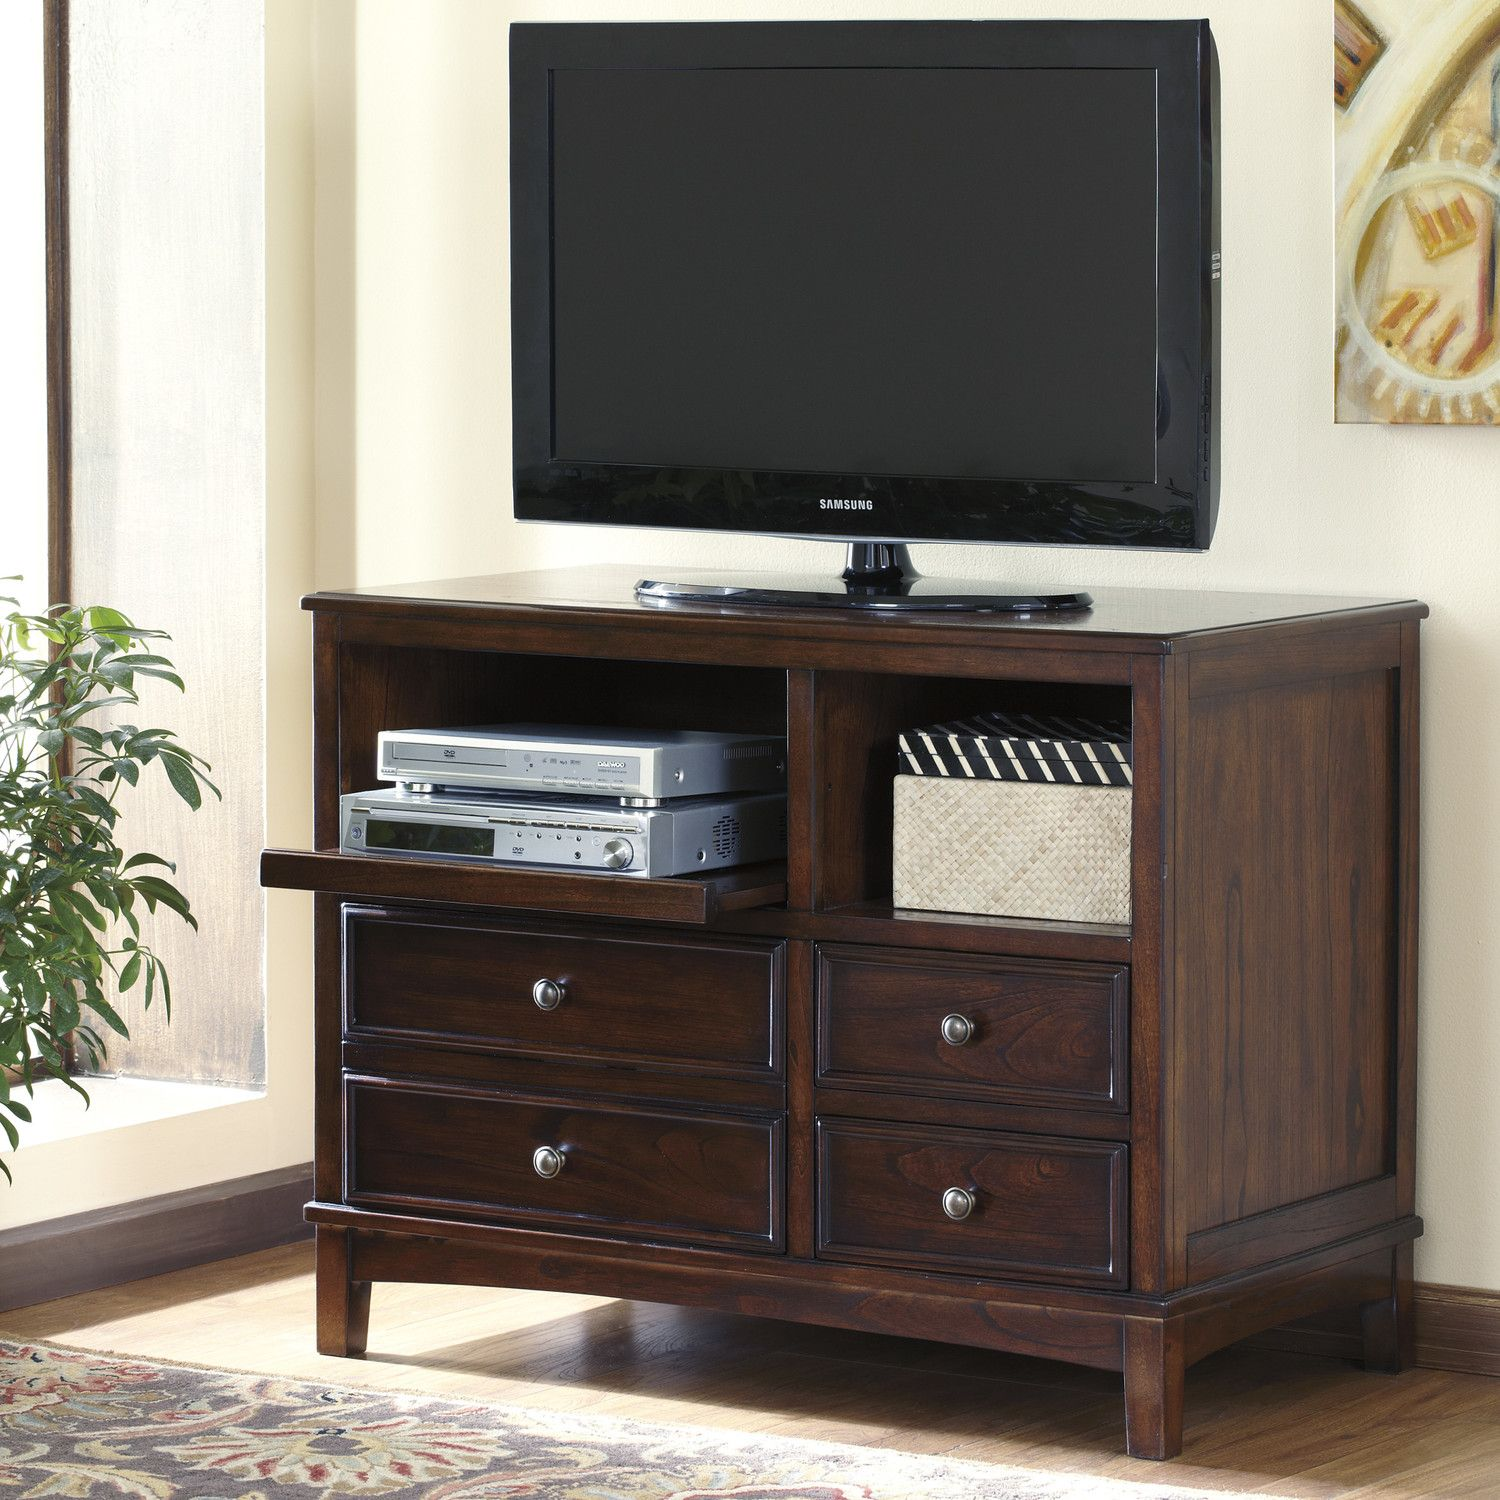 Signature Design By Ashley Loretto Credenza Ashley Furniture Sale Office Storage Cabinets